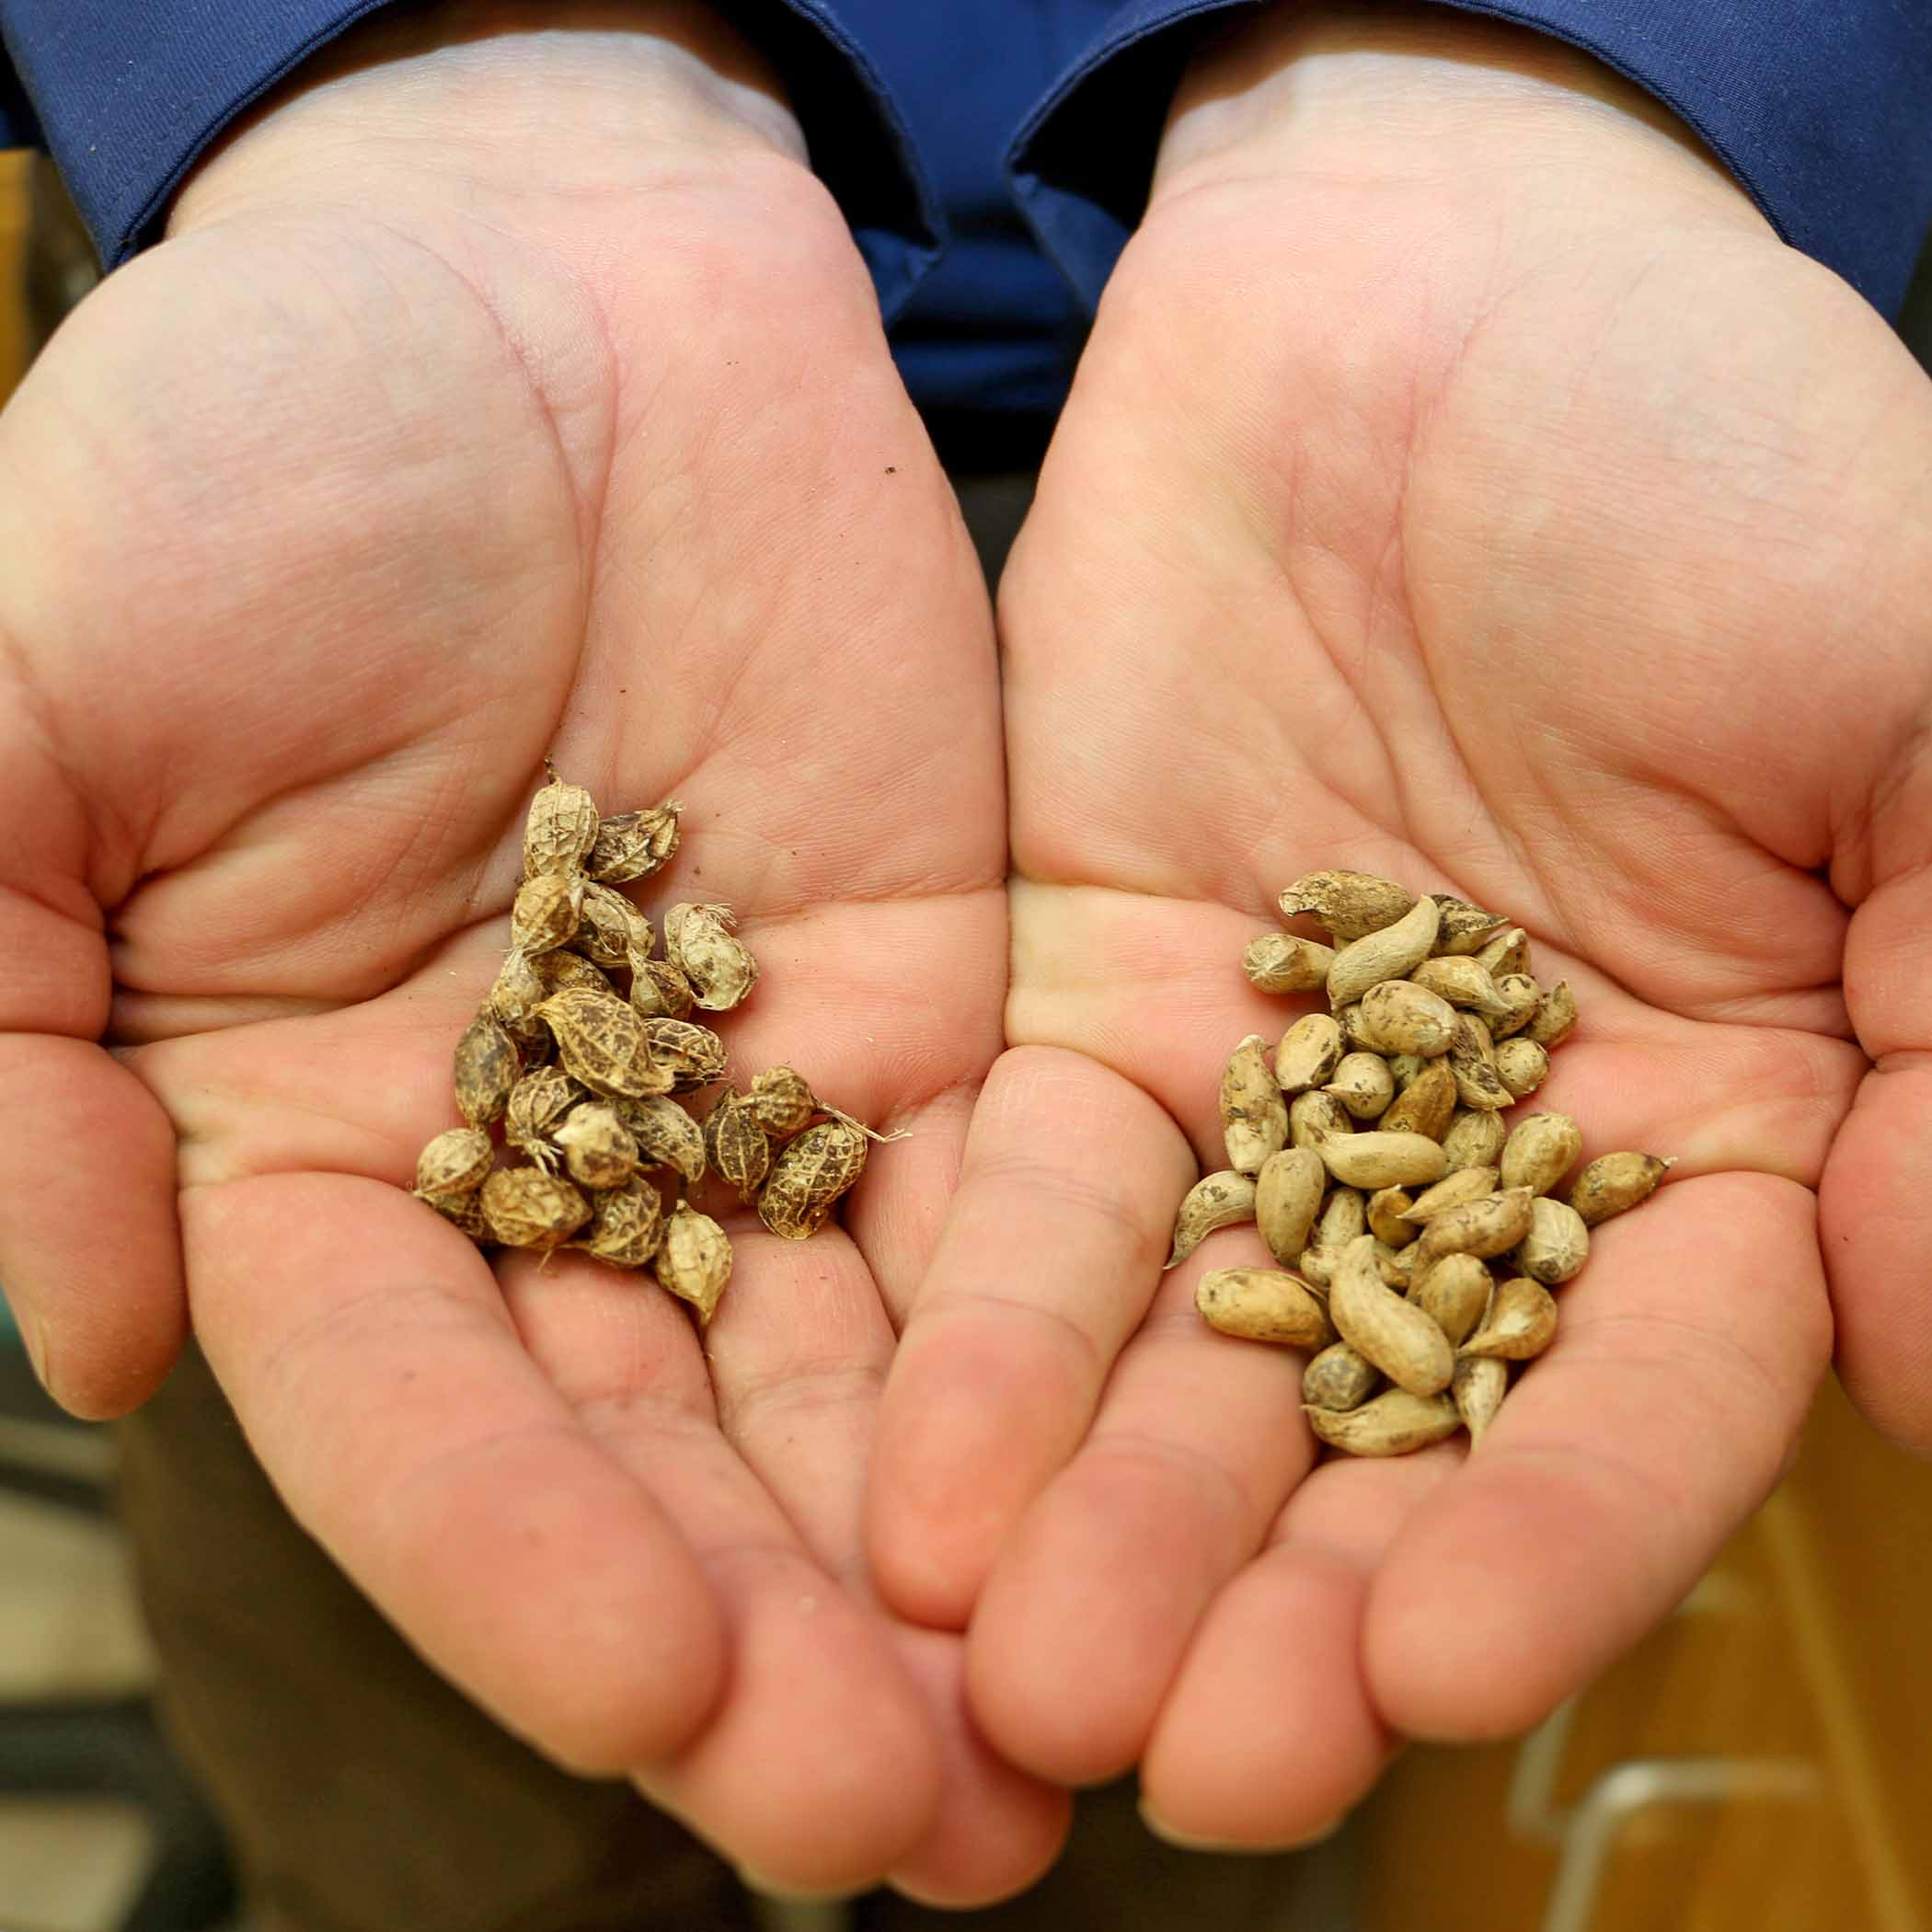 Arachis ipaensis, left, and Arachis duranensis, right, are the two species of wild peanut that crossed to provide the genetic blueprint for today's modern peanut varieties.